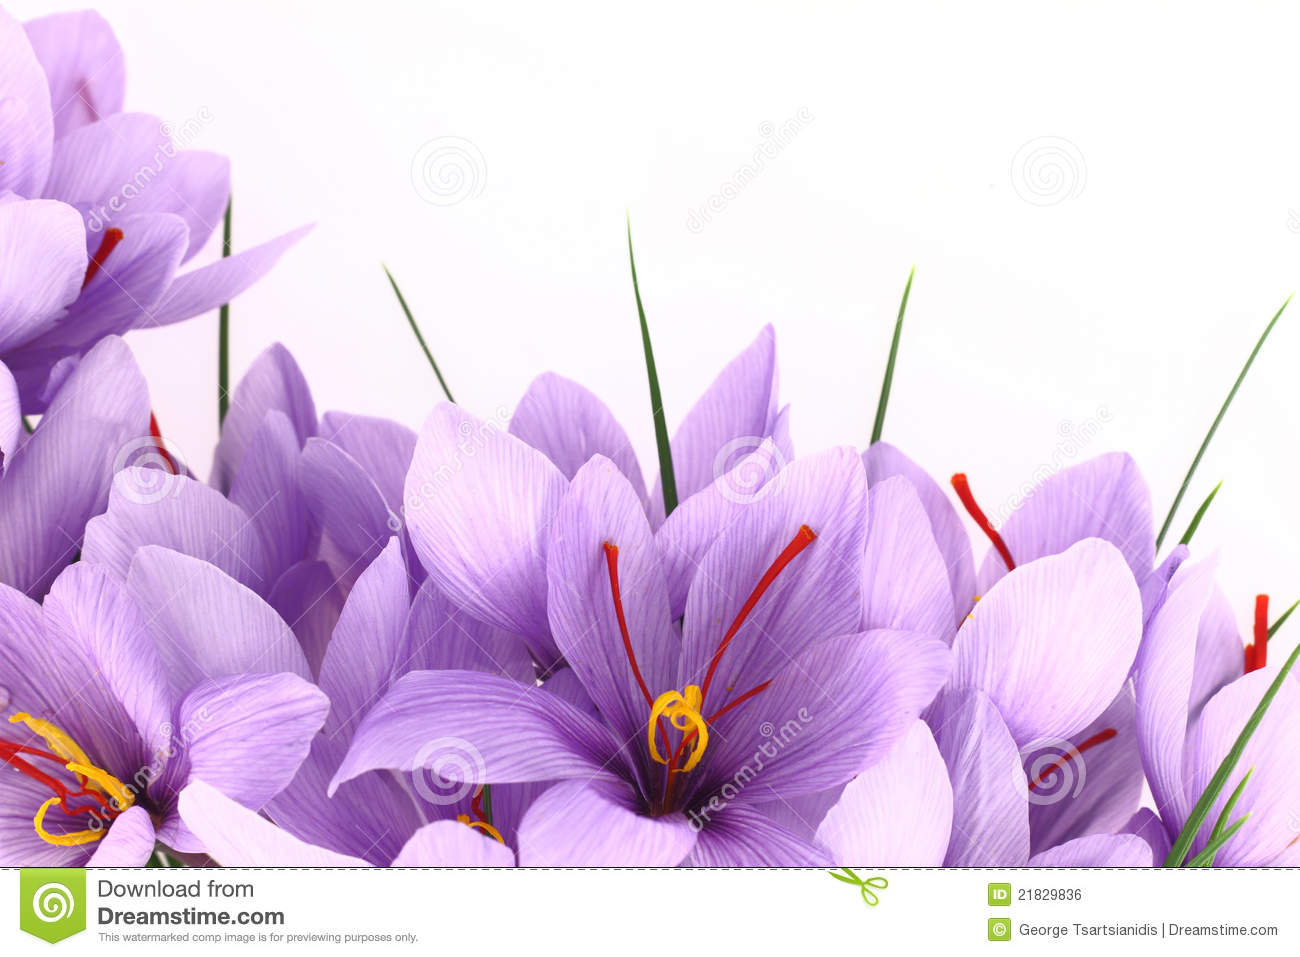 Saffron Flower Stock Photos, Images, & Pictures.